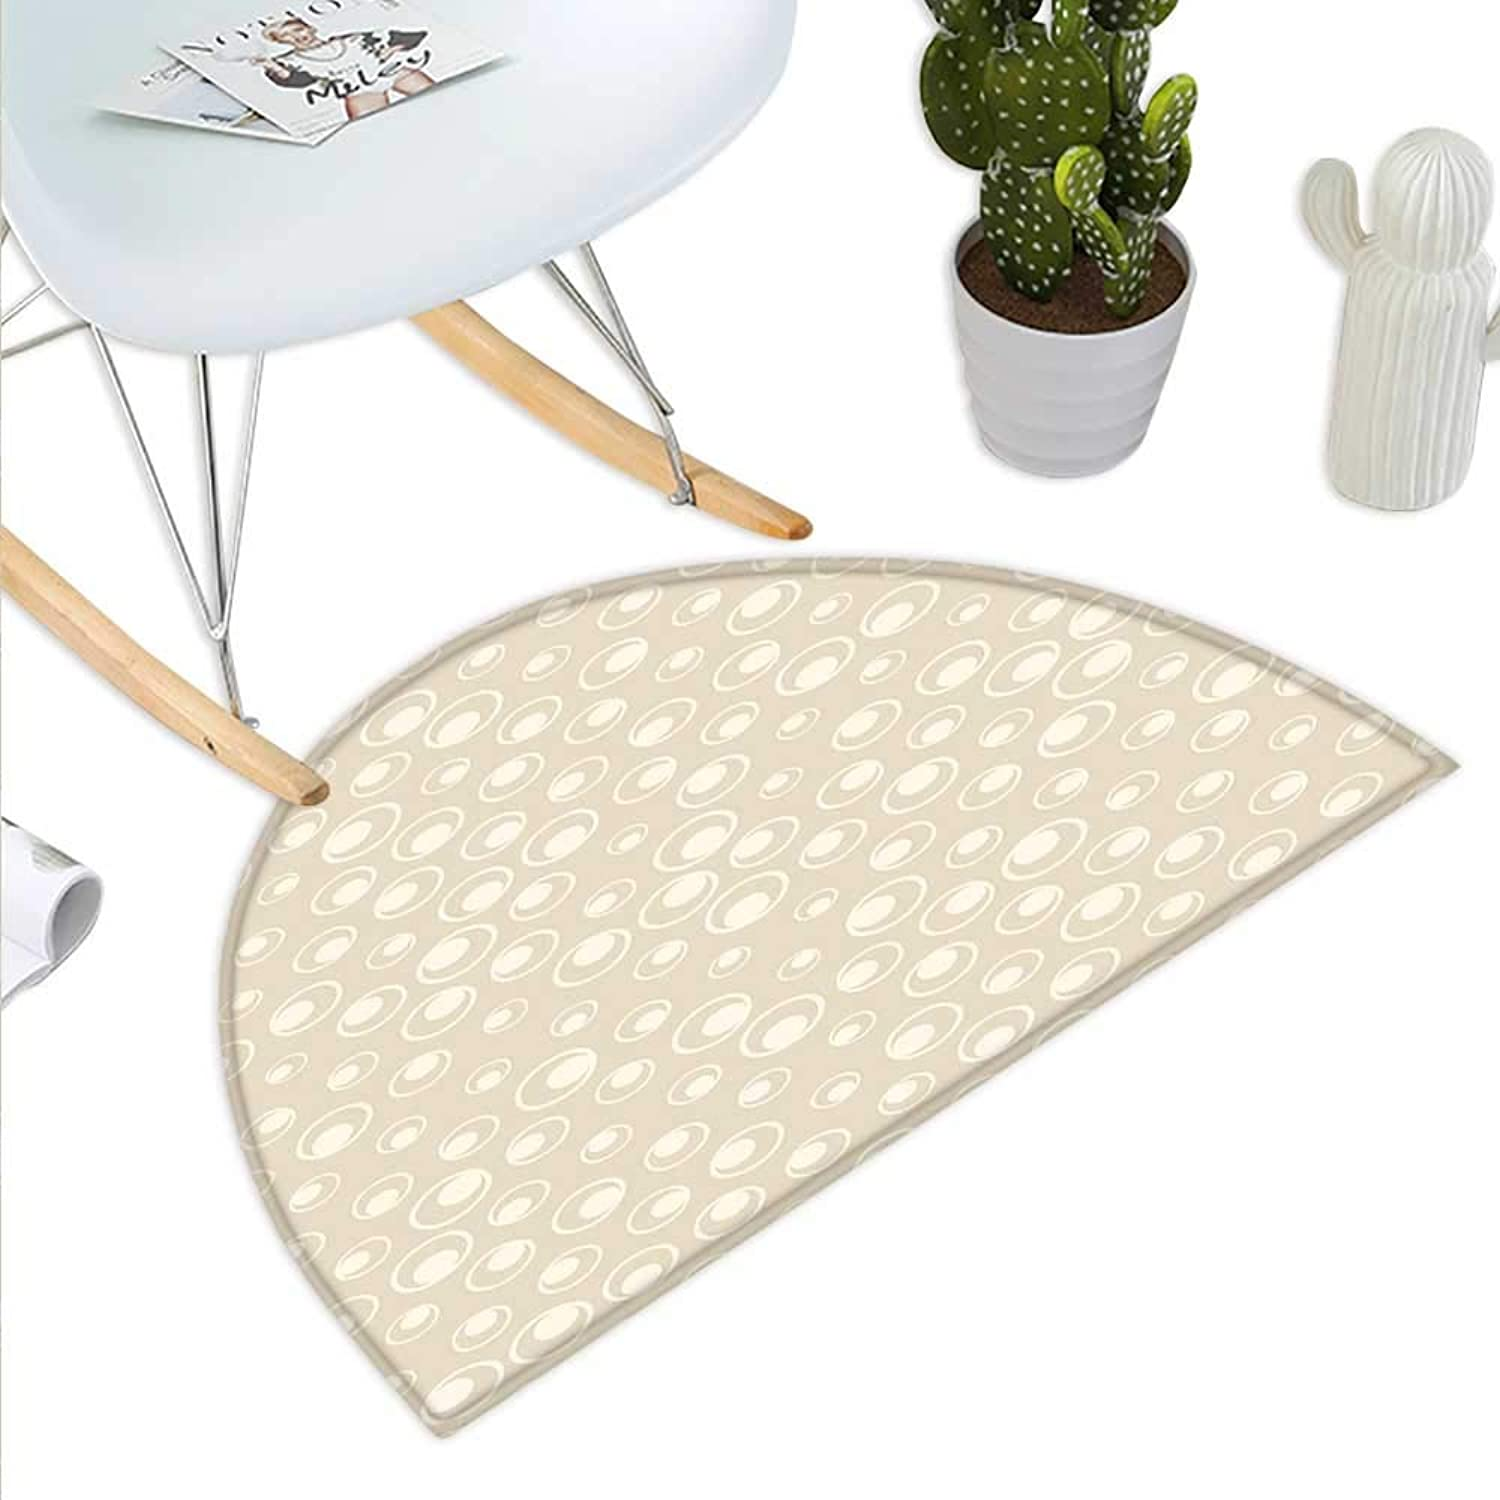 Tan Semicircle Doormat Spotted Dotted Display Bubble Forms Water Inspired Abstraction Circular Composition Halfmoon doormats H 47.2  xD 70.8  Tan Eggshell